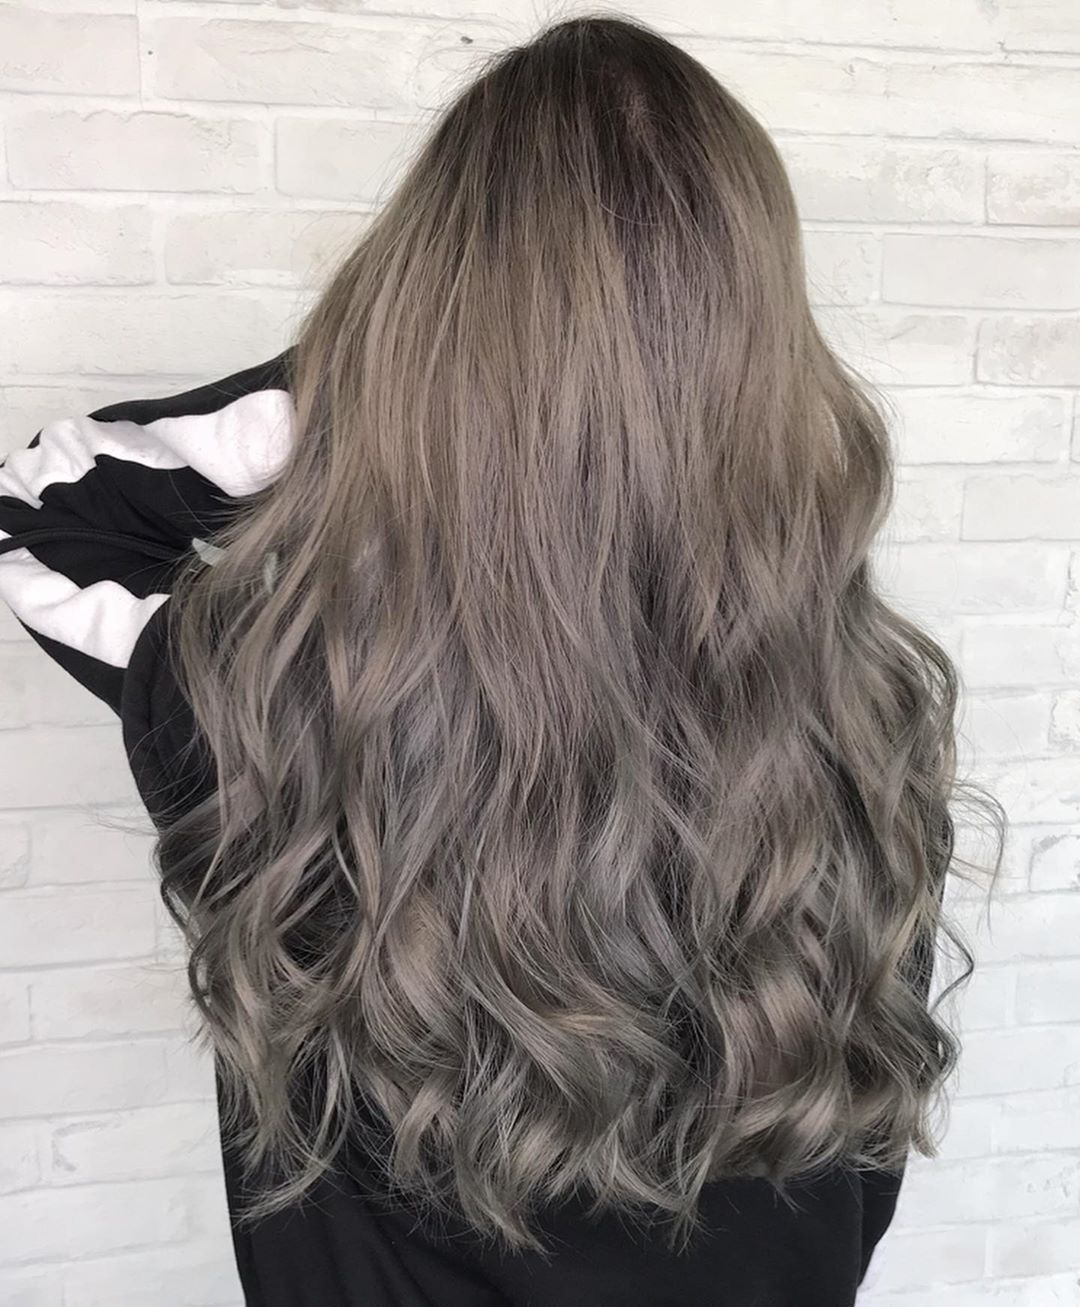 This Grey Is Edgy Yet Timeless Don T You Think Stylist Number76 Jeffee Number76 Publika Ash Hair Color Edgy Hair Color Hair Colour Design